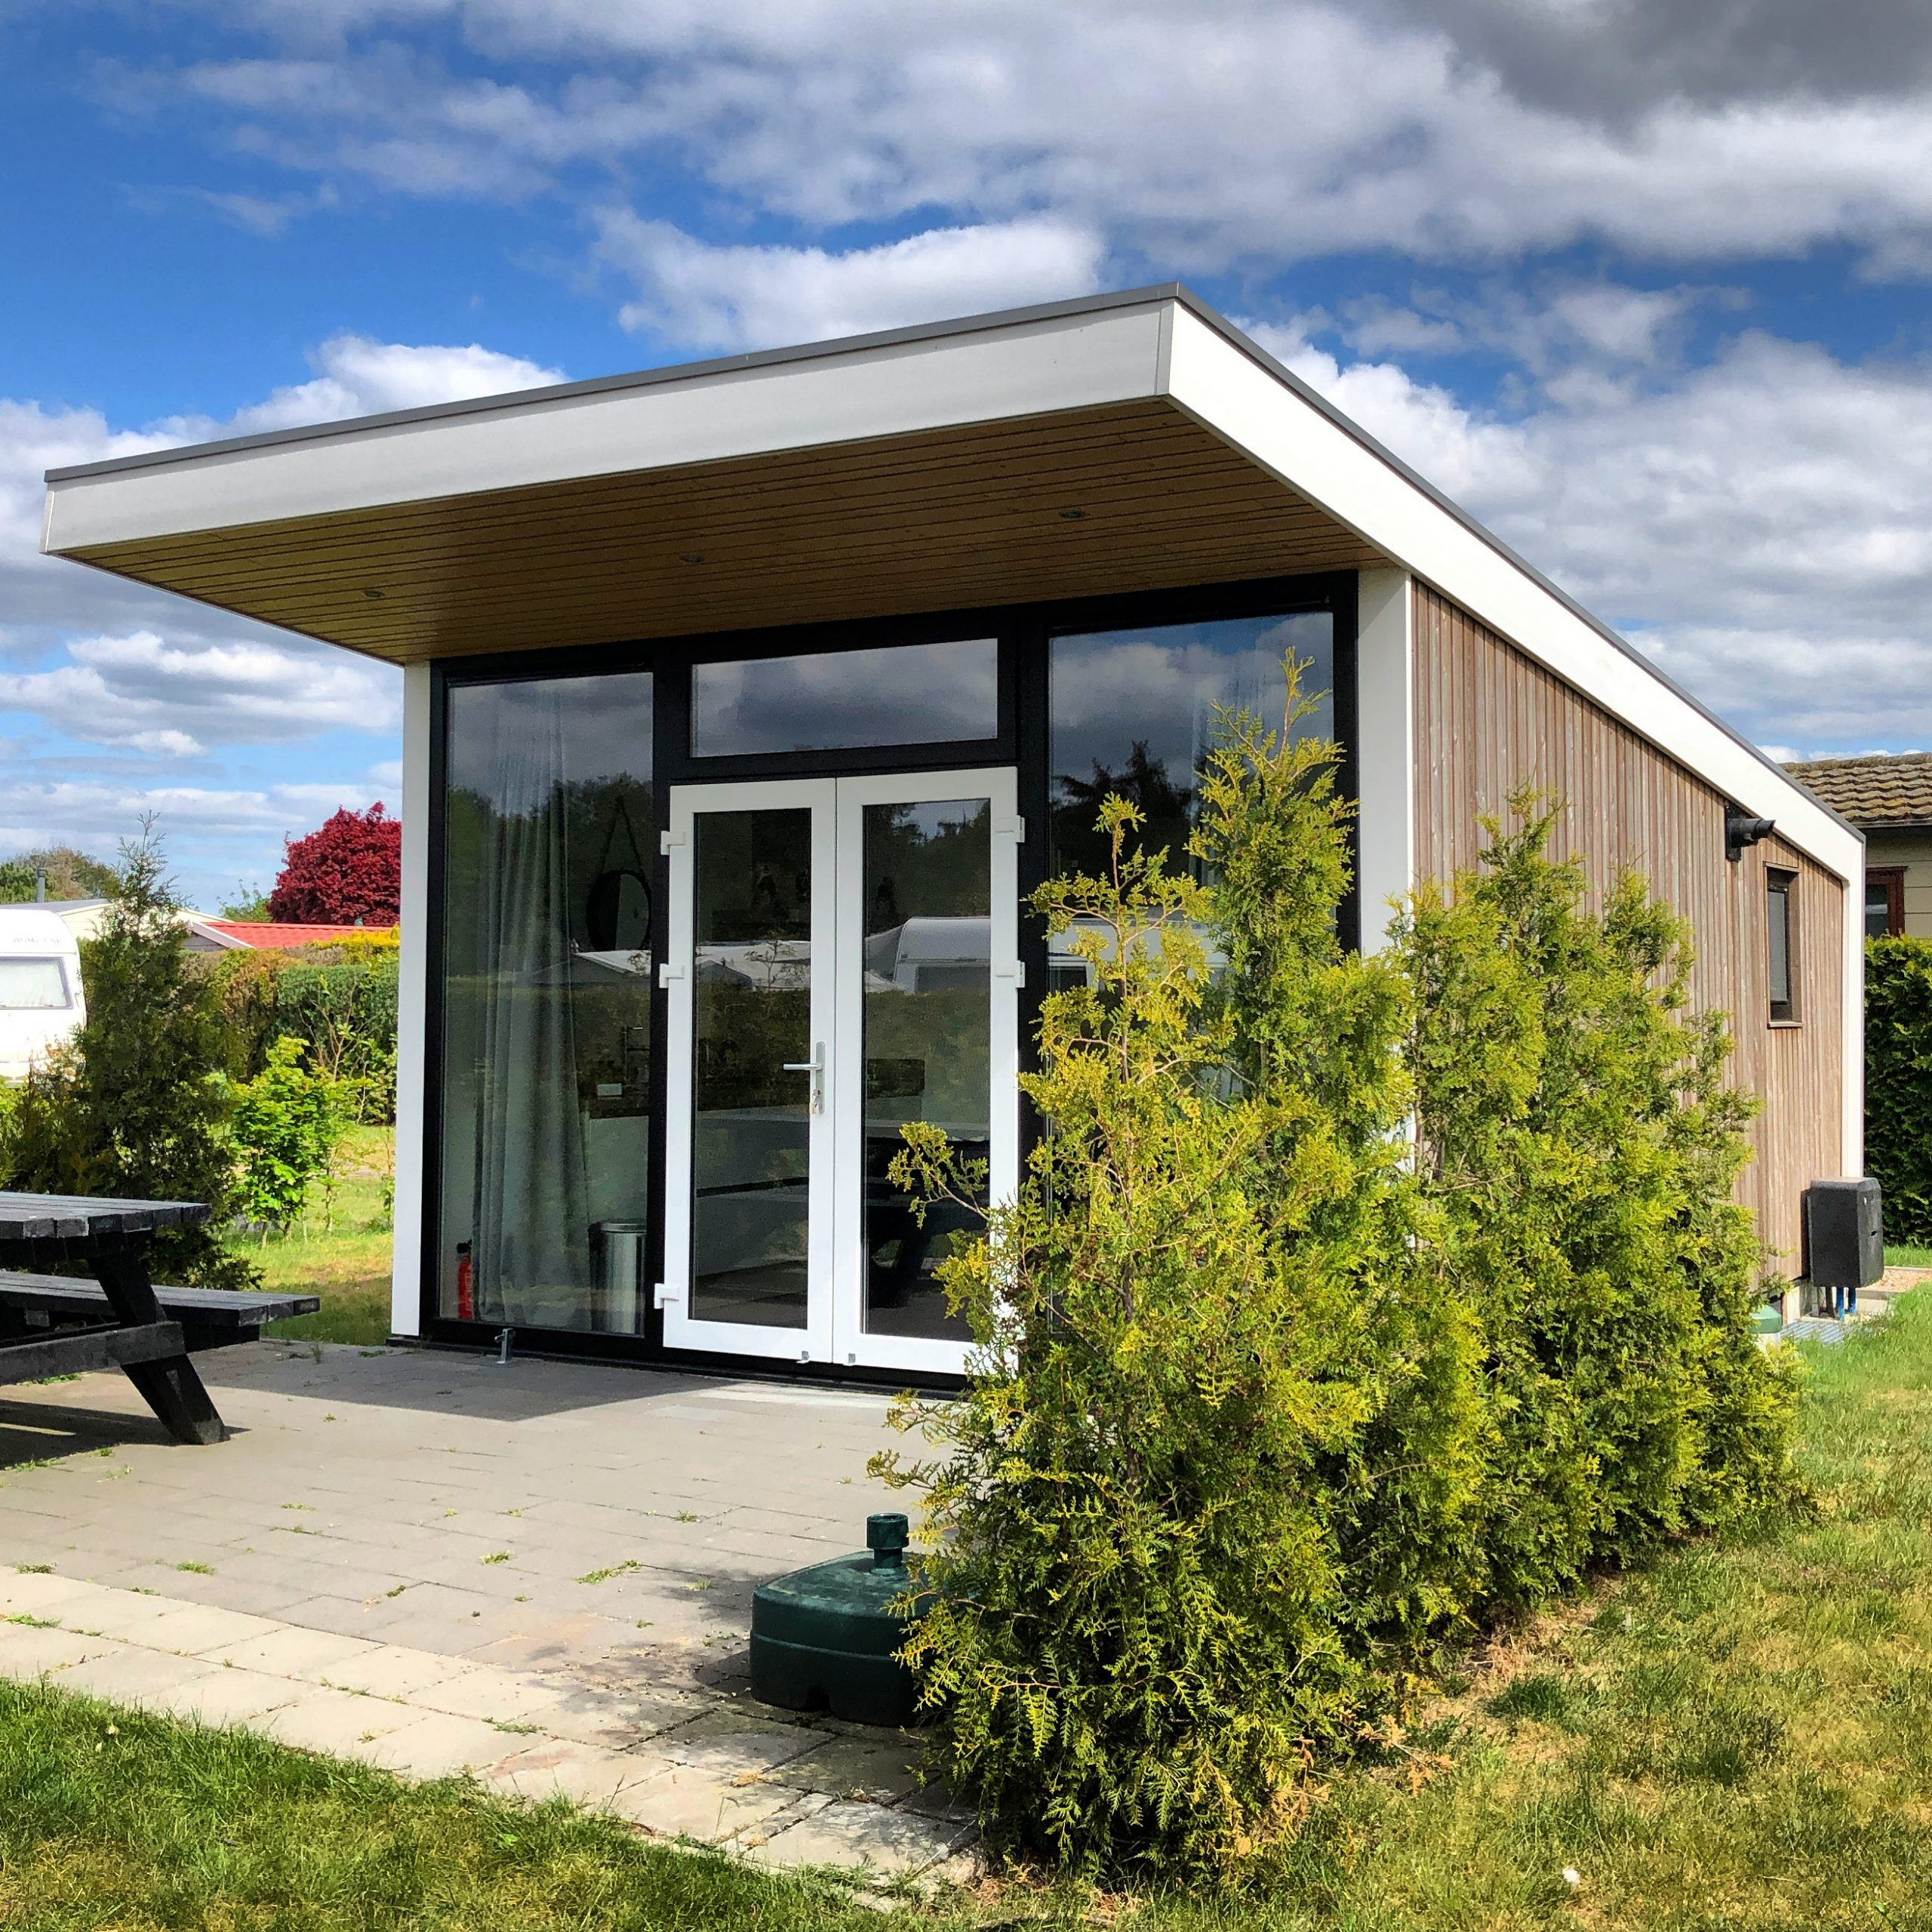 Luxe Tiny House in Stroe